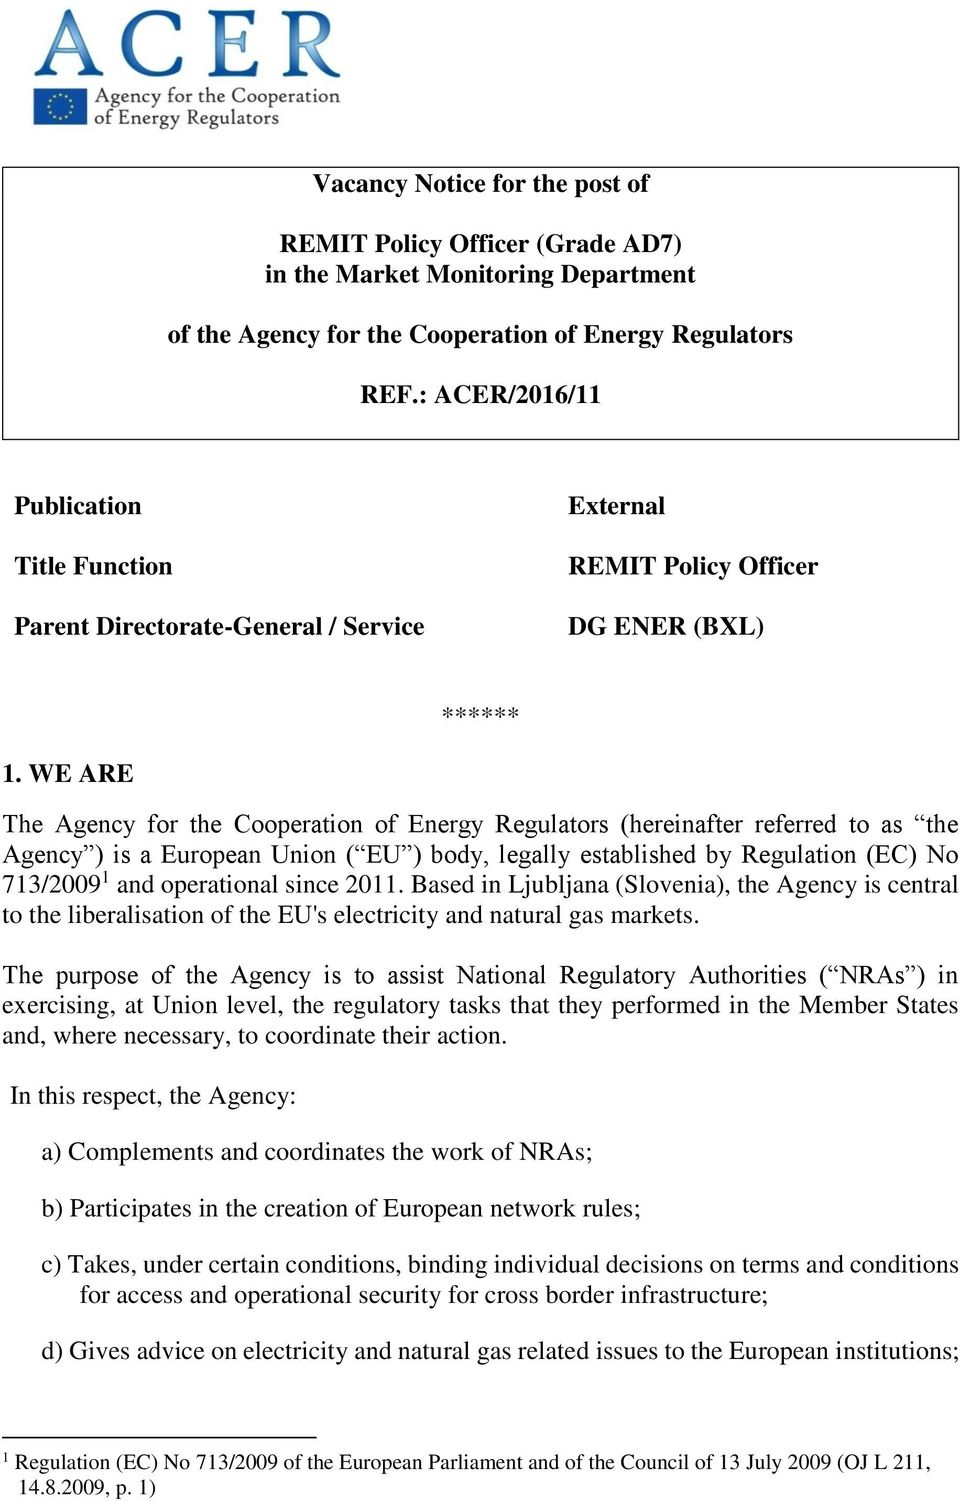 WE ARE The Agency for the Cooperation of Energy Regulators (hereinafter referred to as the Agency ) is a European Union ( EU ) body, legally established by Regulation (EC) No 713/2009 1 and